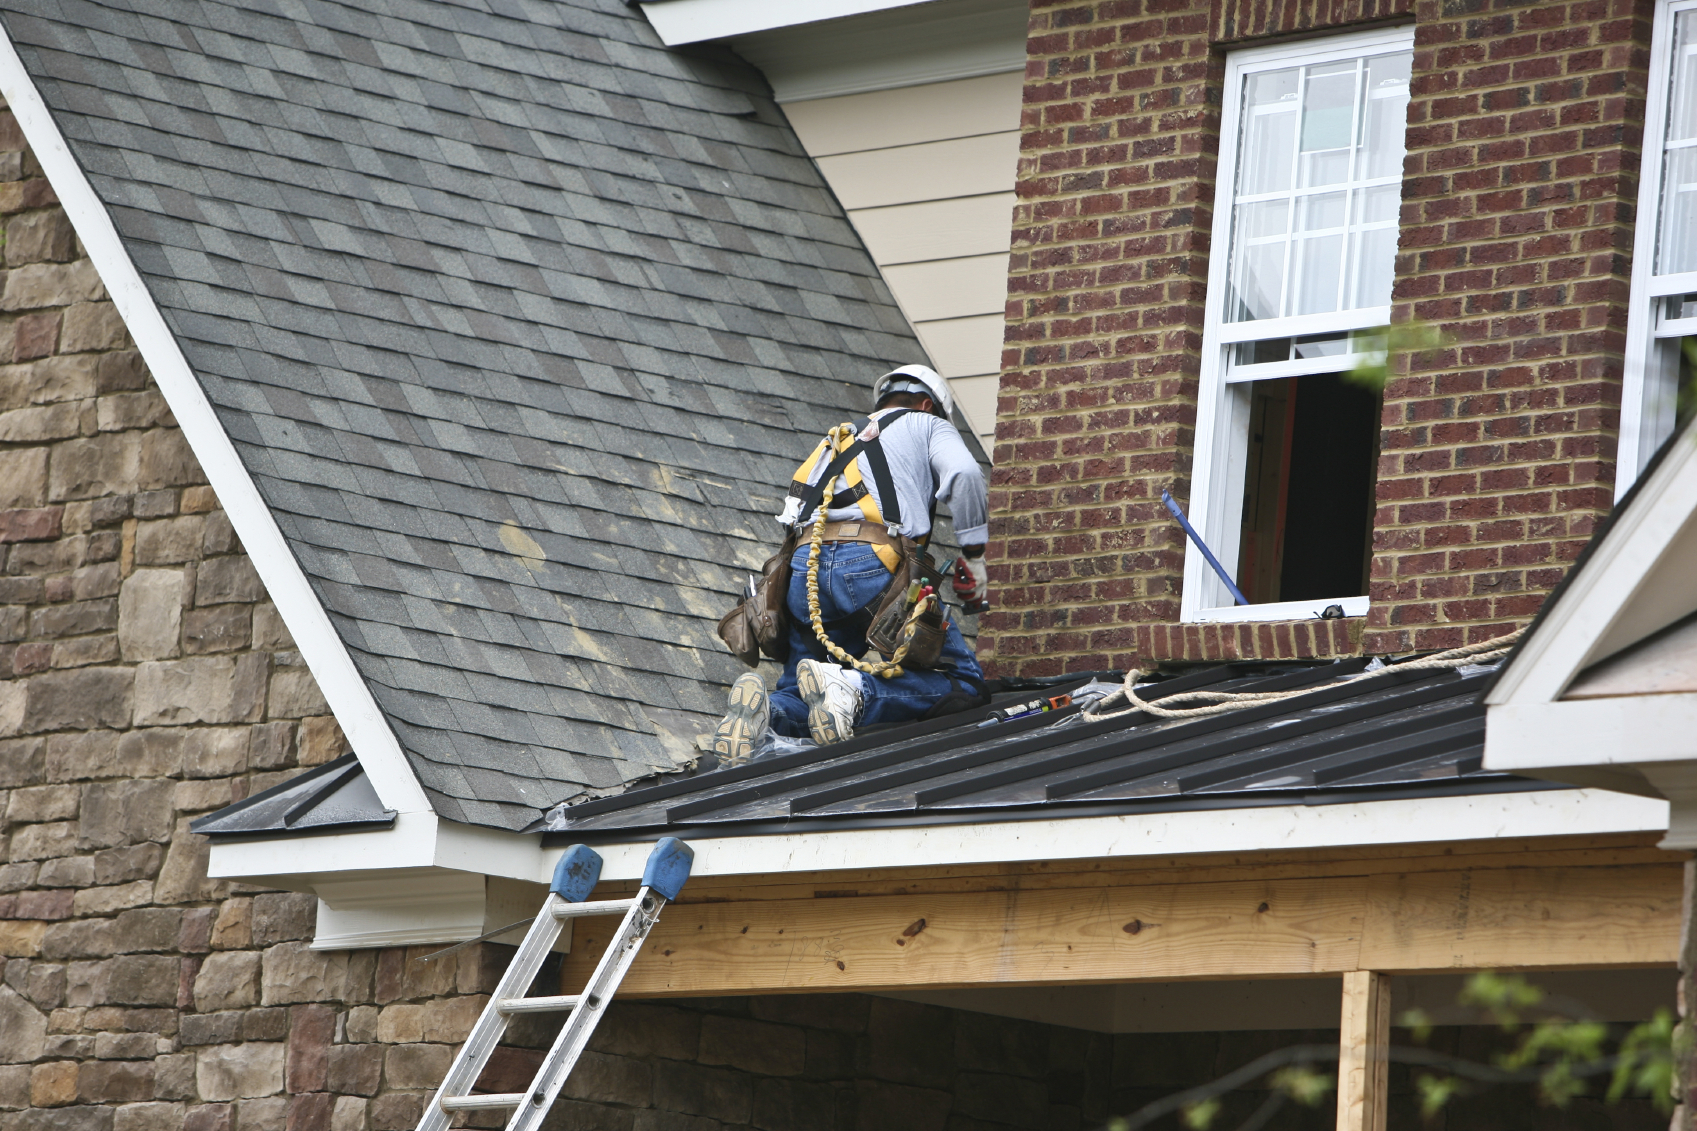 How to Pick a Good Roofer – Roofing Services Guide